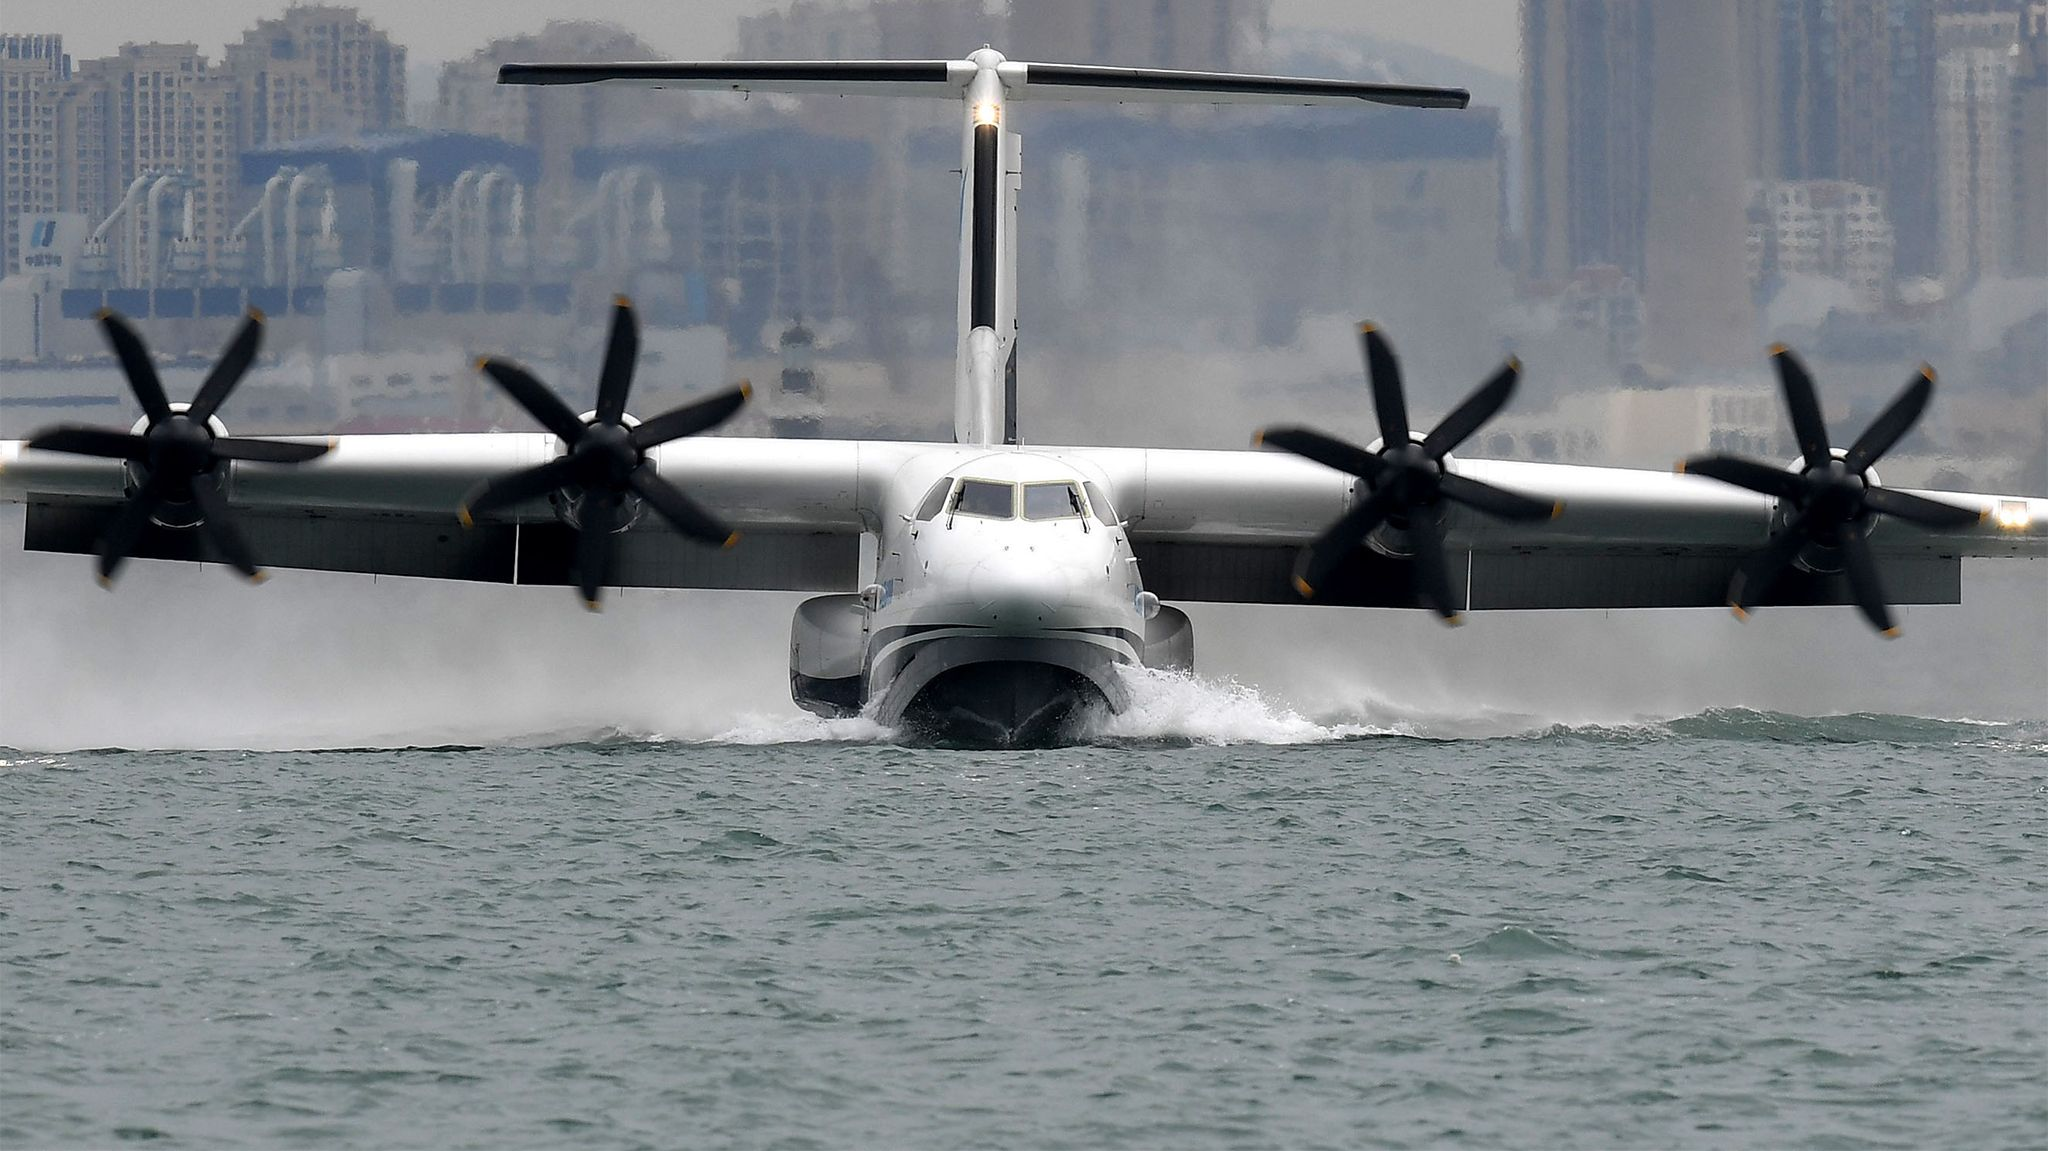 The Rise and Fall (and Rise?) of the Military Seaplane